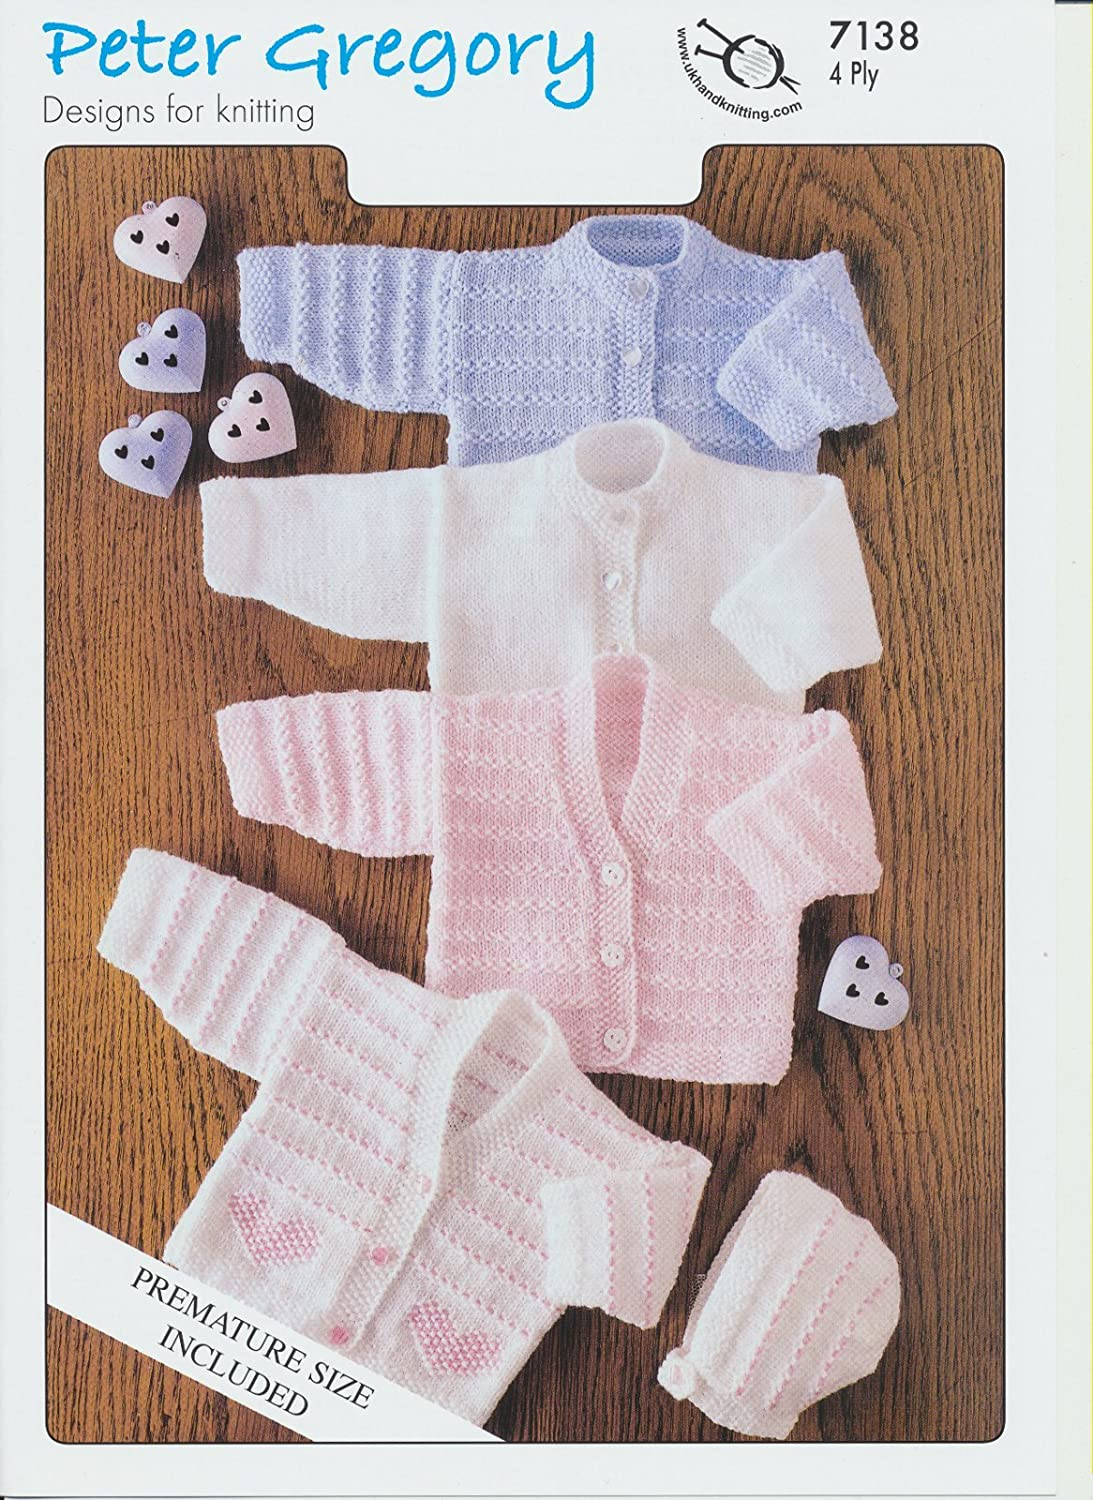 7209 Baby Knitting Pattern in 4 Ply